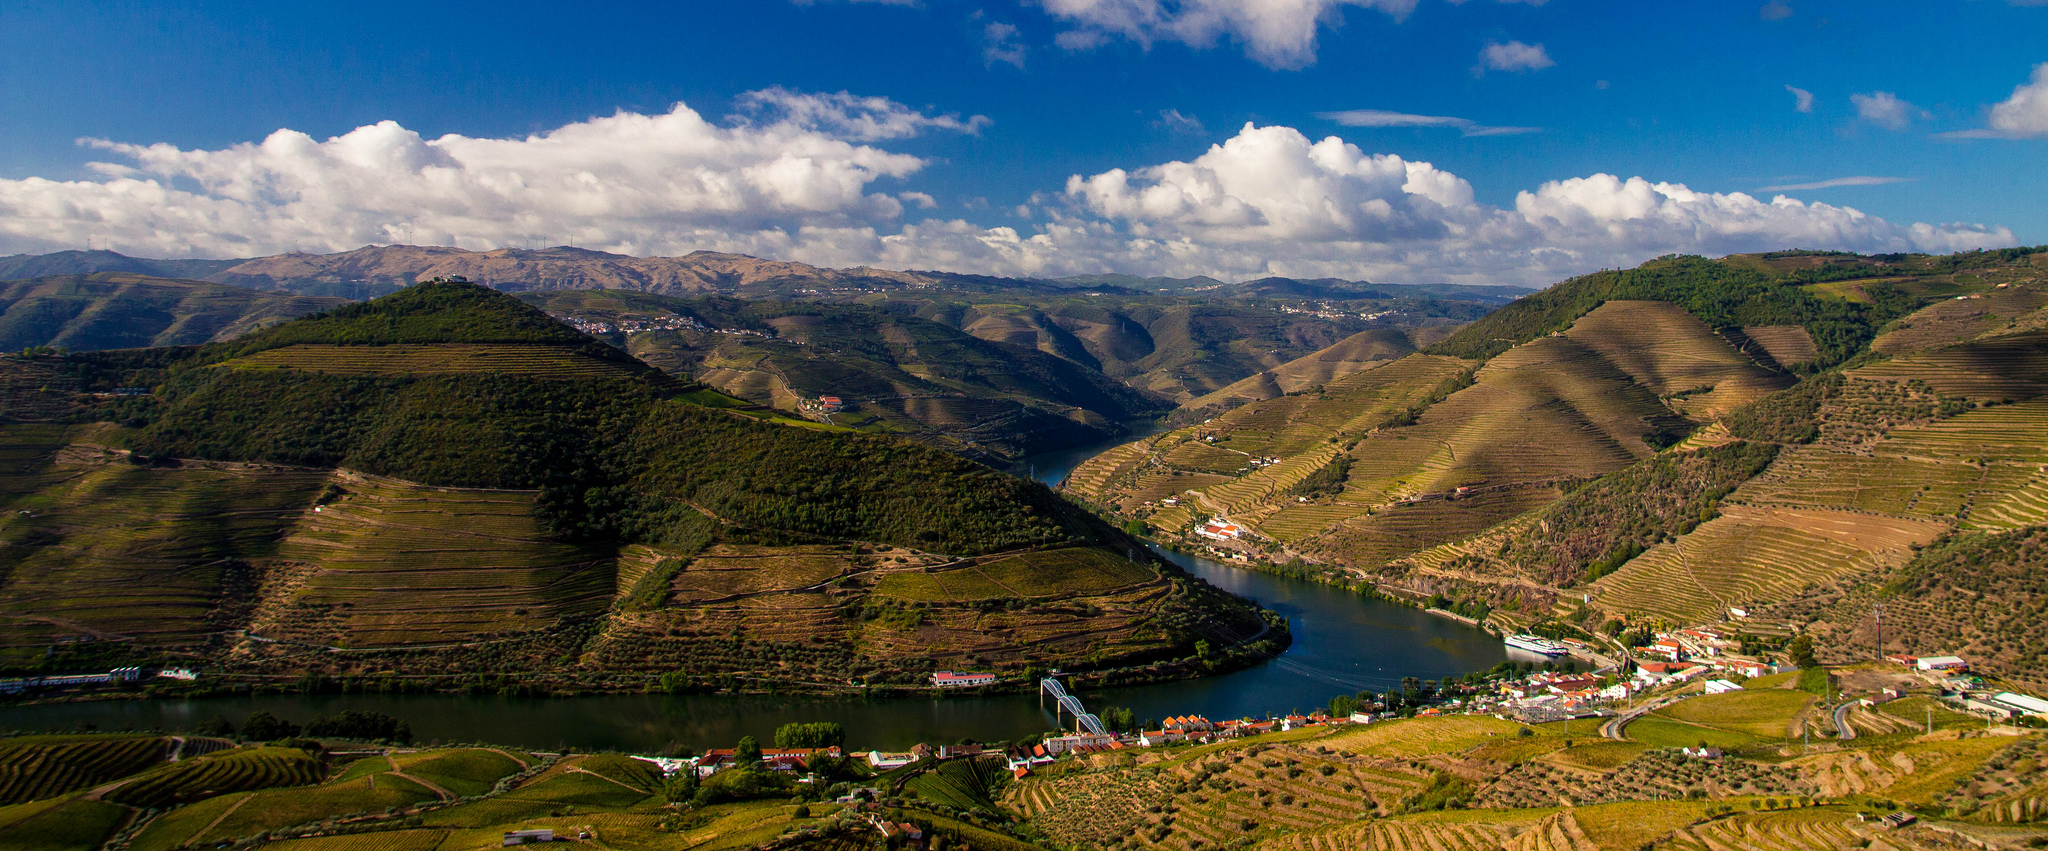 Douro River at Pinhão, / ©Ryan Opaz, Flickr user